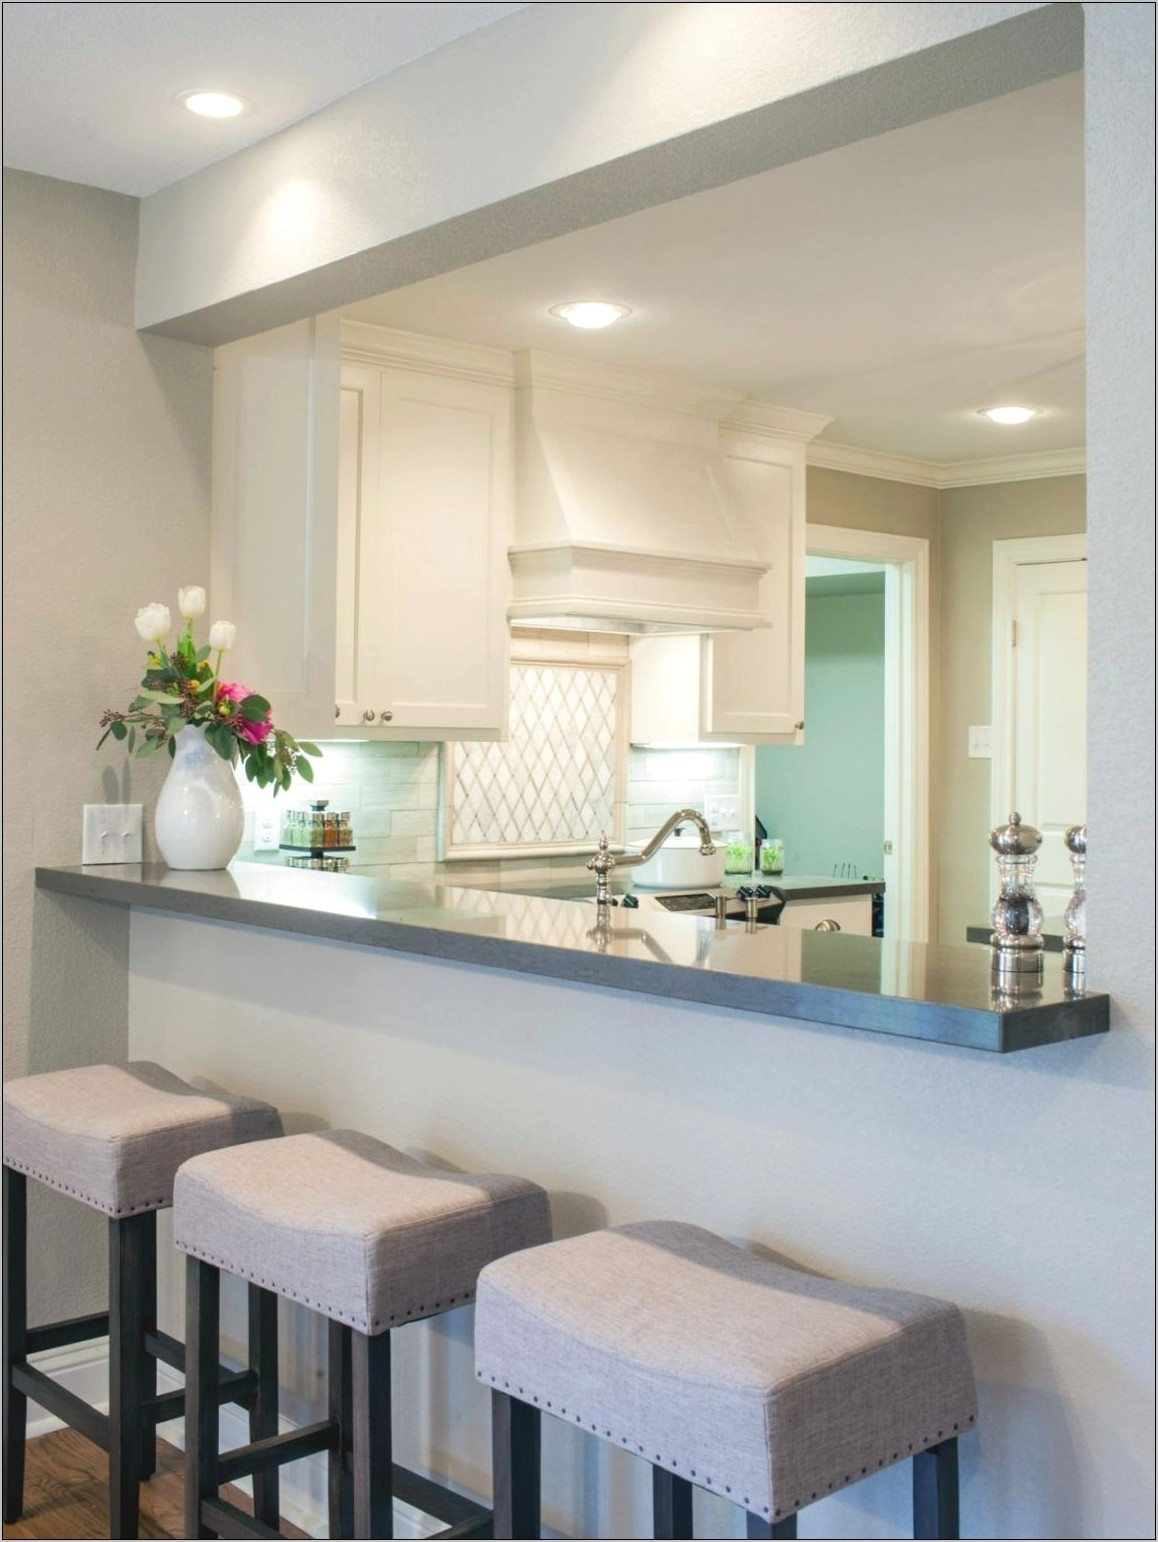 Decorative Passthroughs In The Kitchen